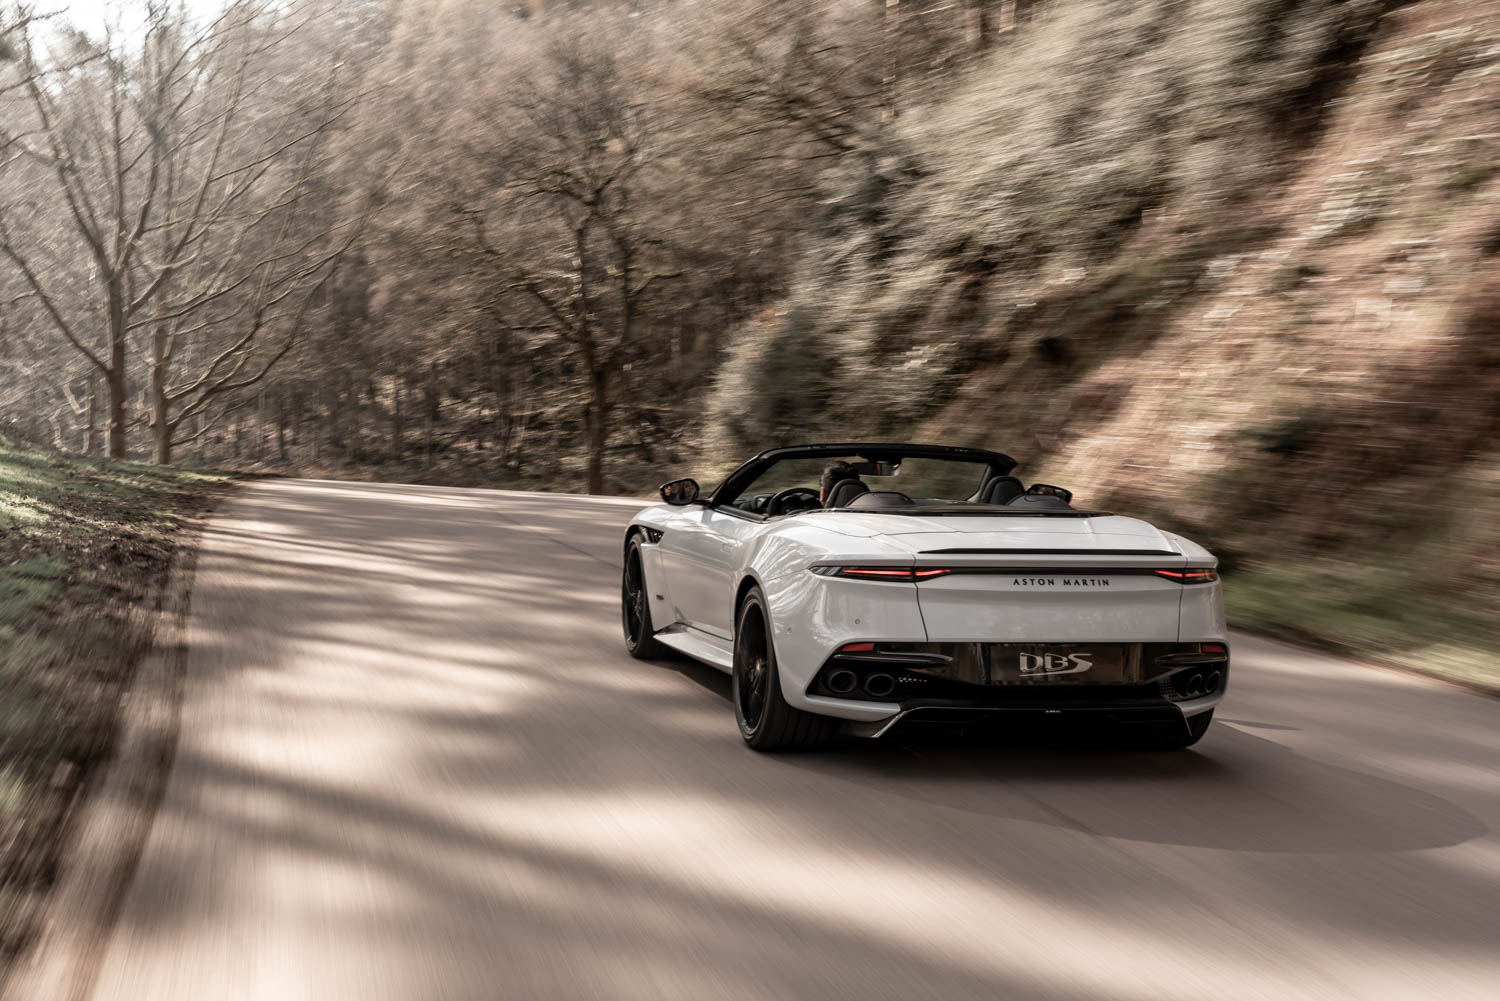 Aston Martin DBS Superleggara Volante rear 3/4